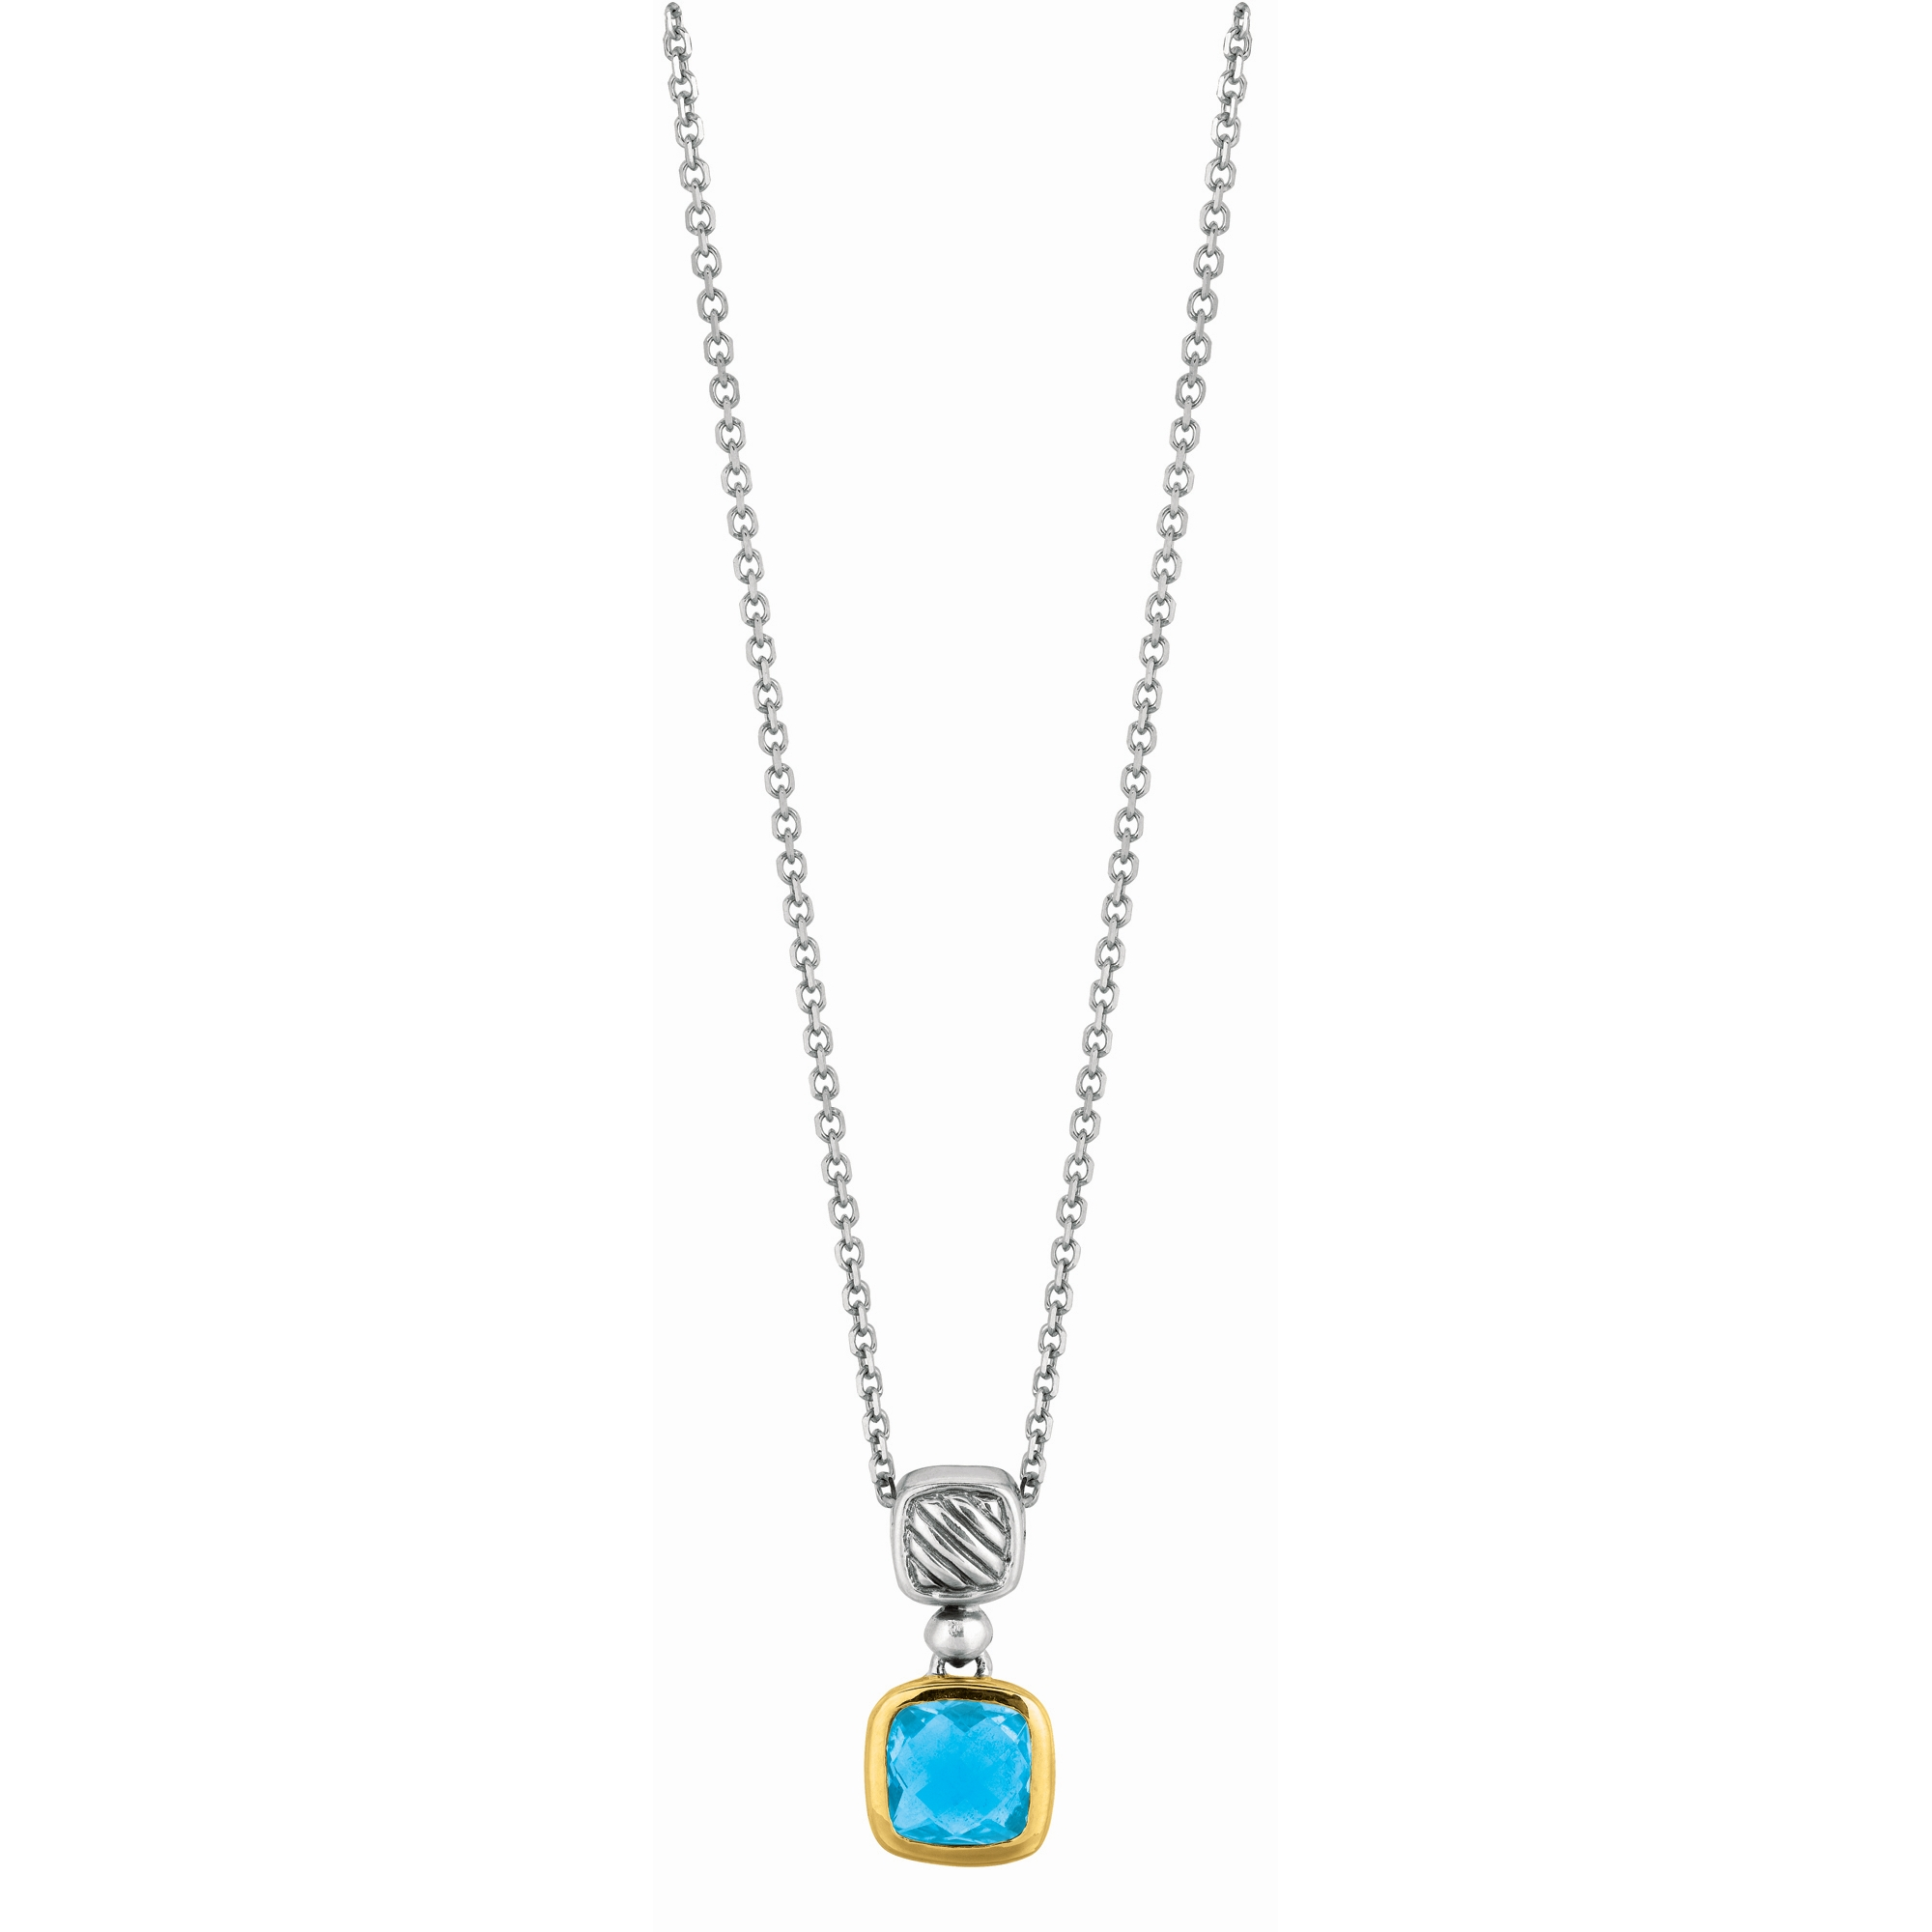 AMAZING Flowering Tube Onyx Stalactite Pendant wFaceted London Blue Topaz in Oxidized Sterling Silver